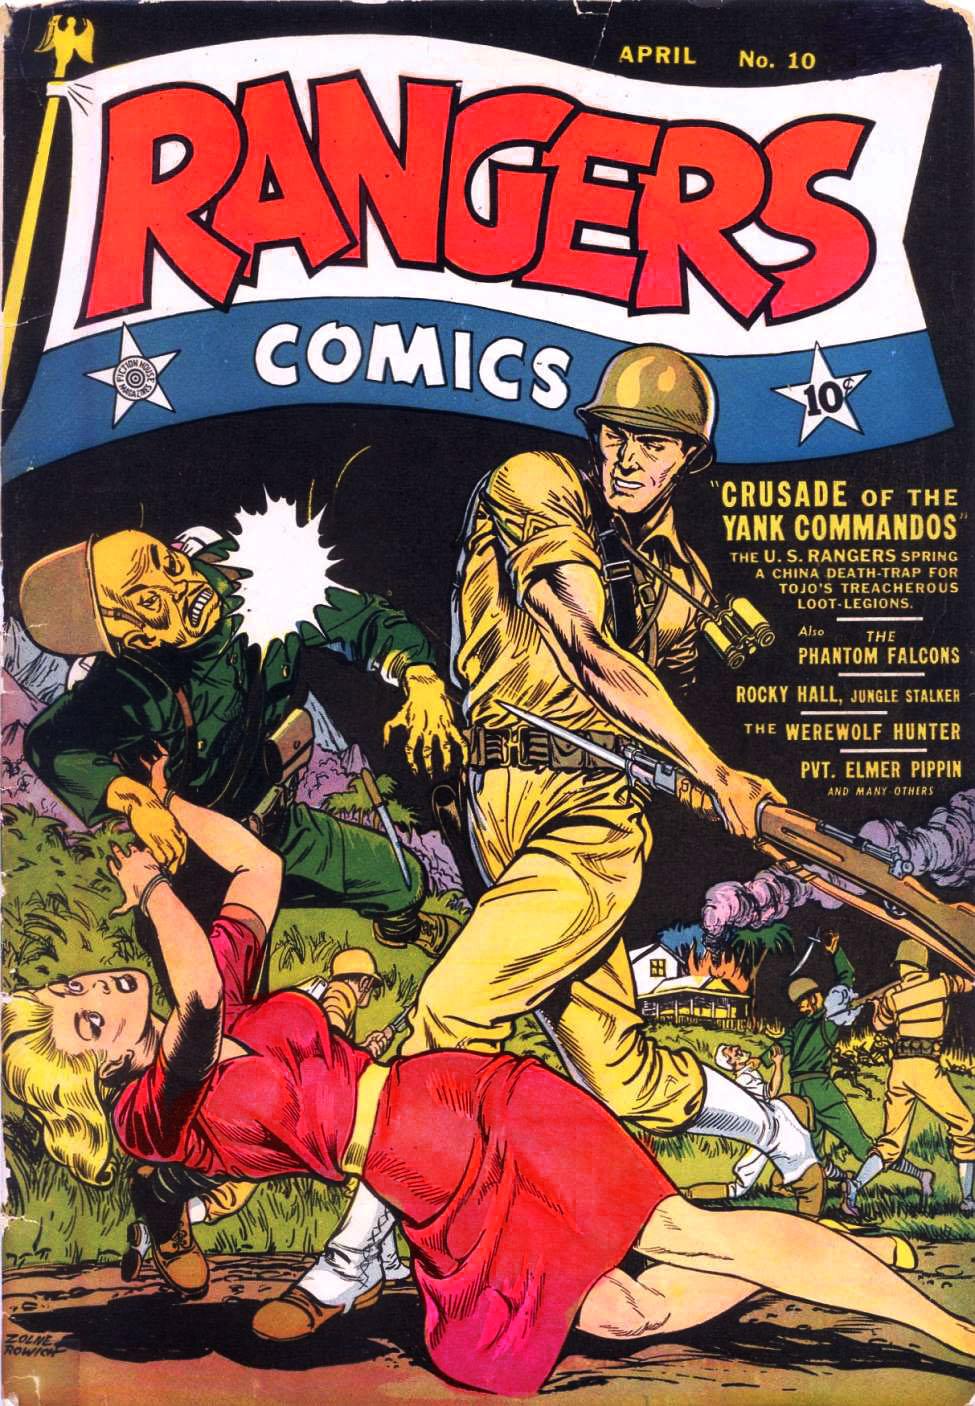 Rangers Comics #10, Fiction House